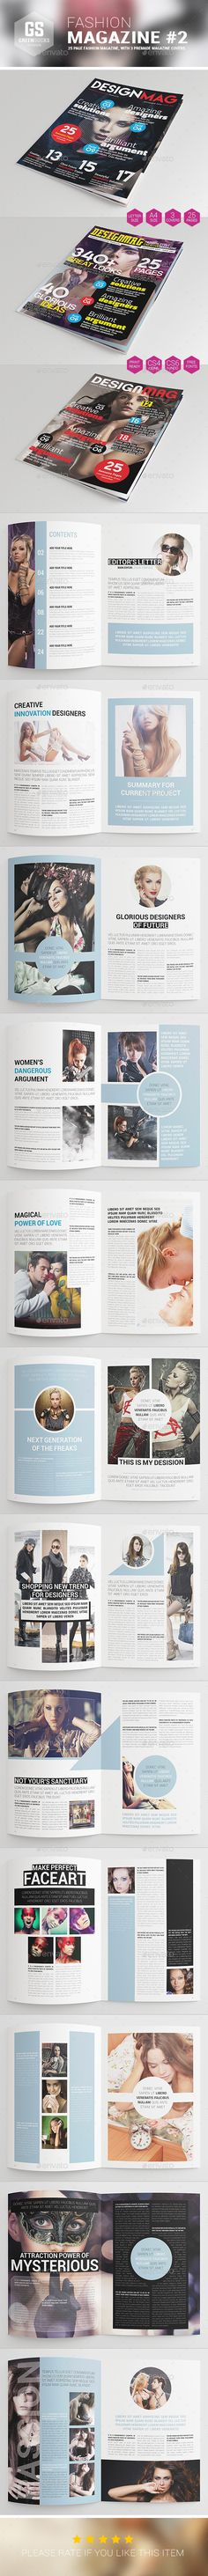 Fashion Magazine #2 — InDesign INDD #multipurpose #fashion • Available here → https://graphicriver.net/item/fashion-magazine-2/9276566?ref=pxcr